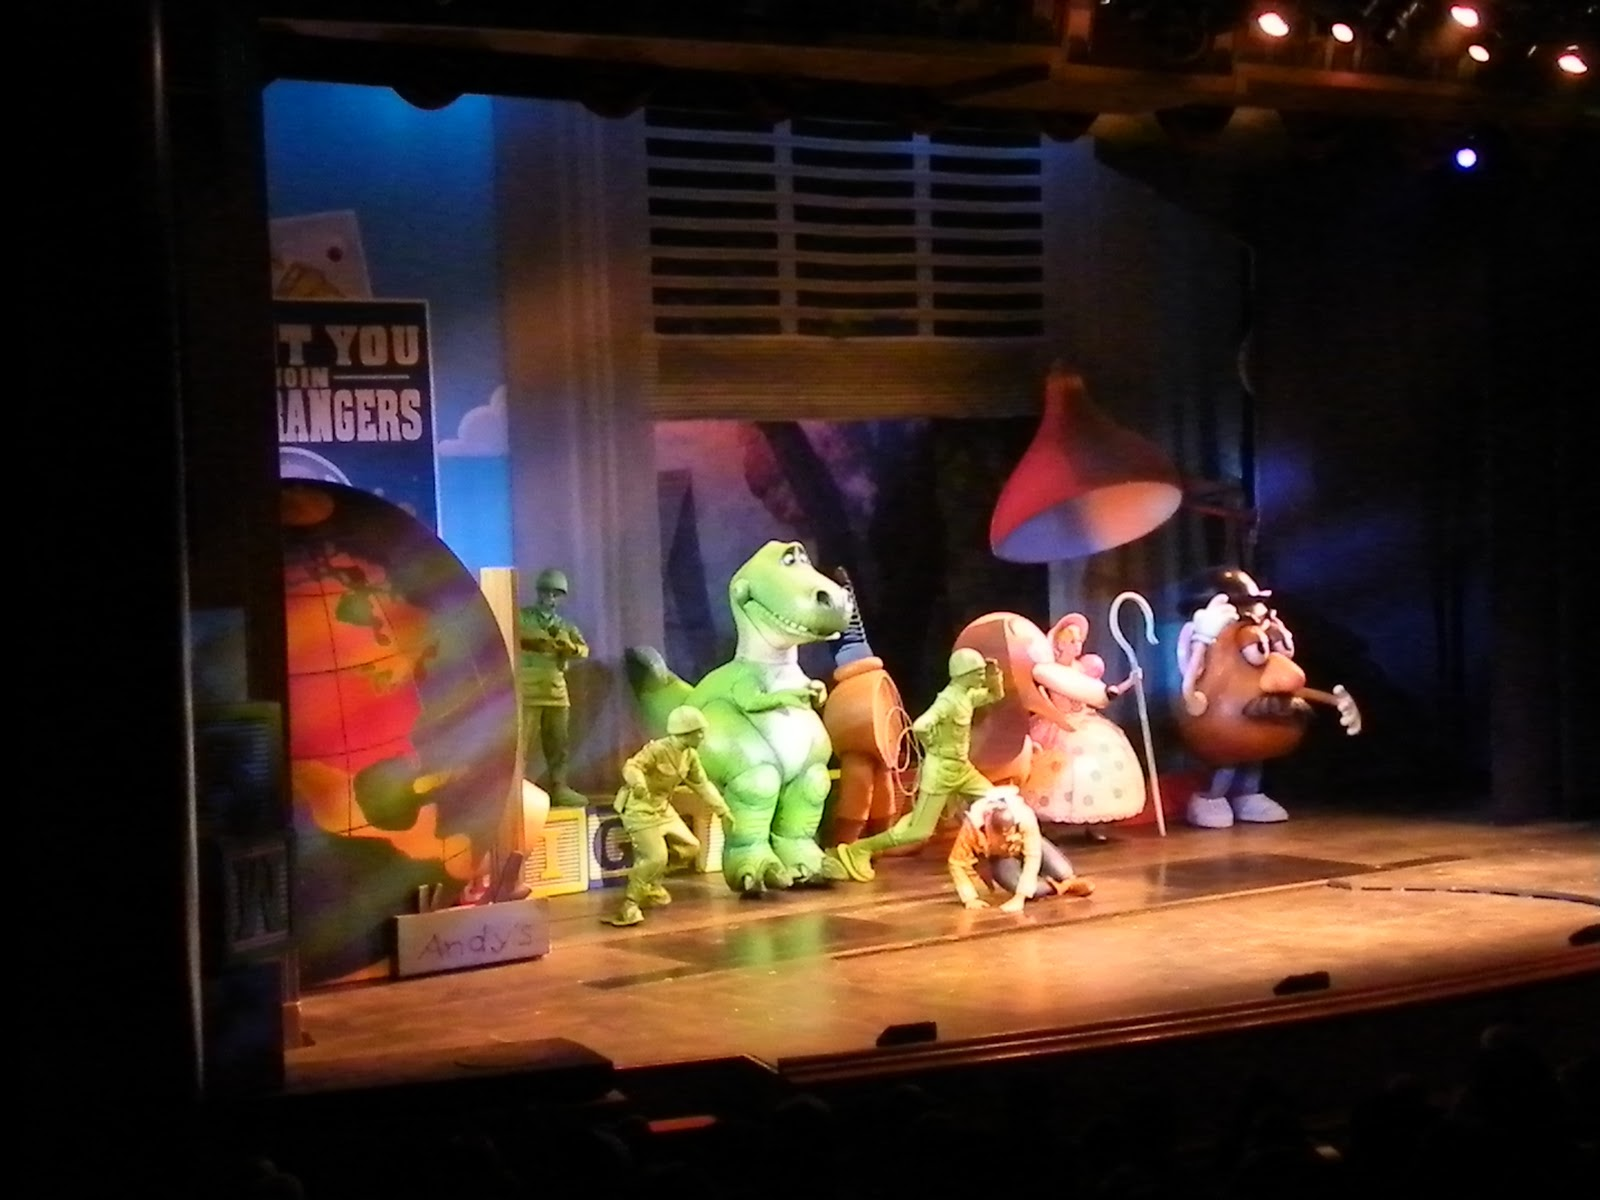 Toy Story The Musical : Pixie pranks and disney fun aladdin the musical vs toy